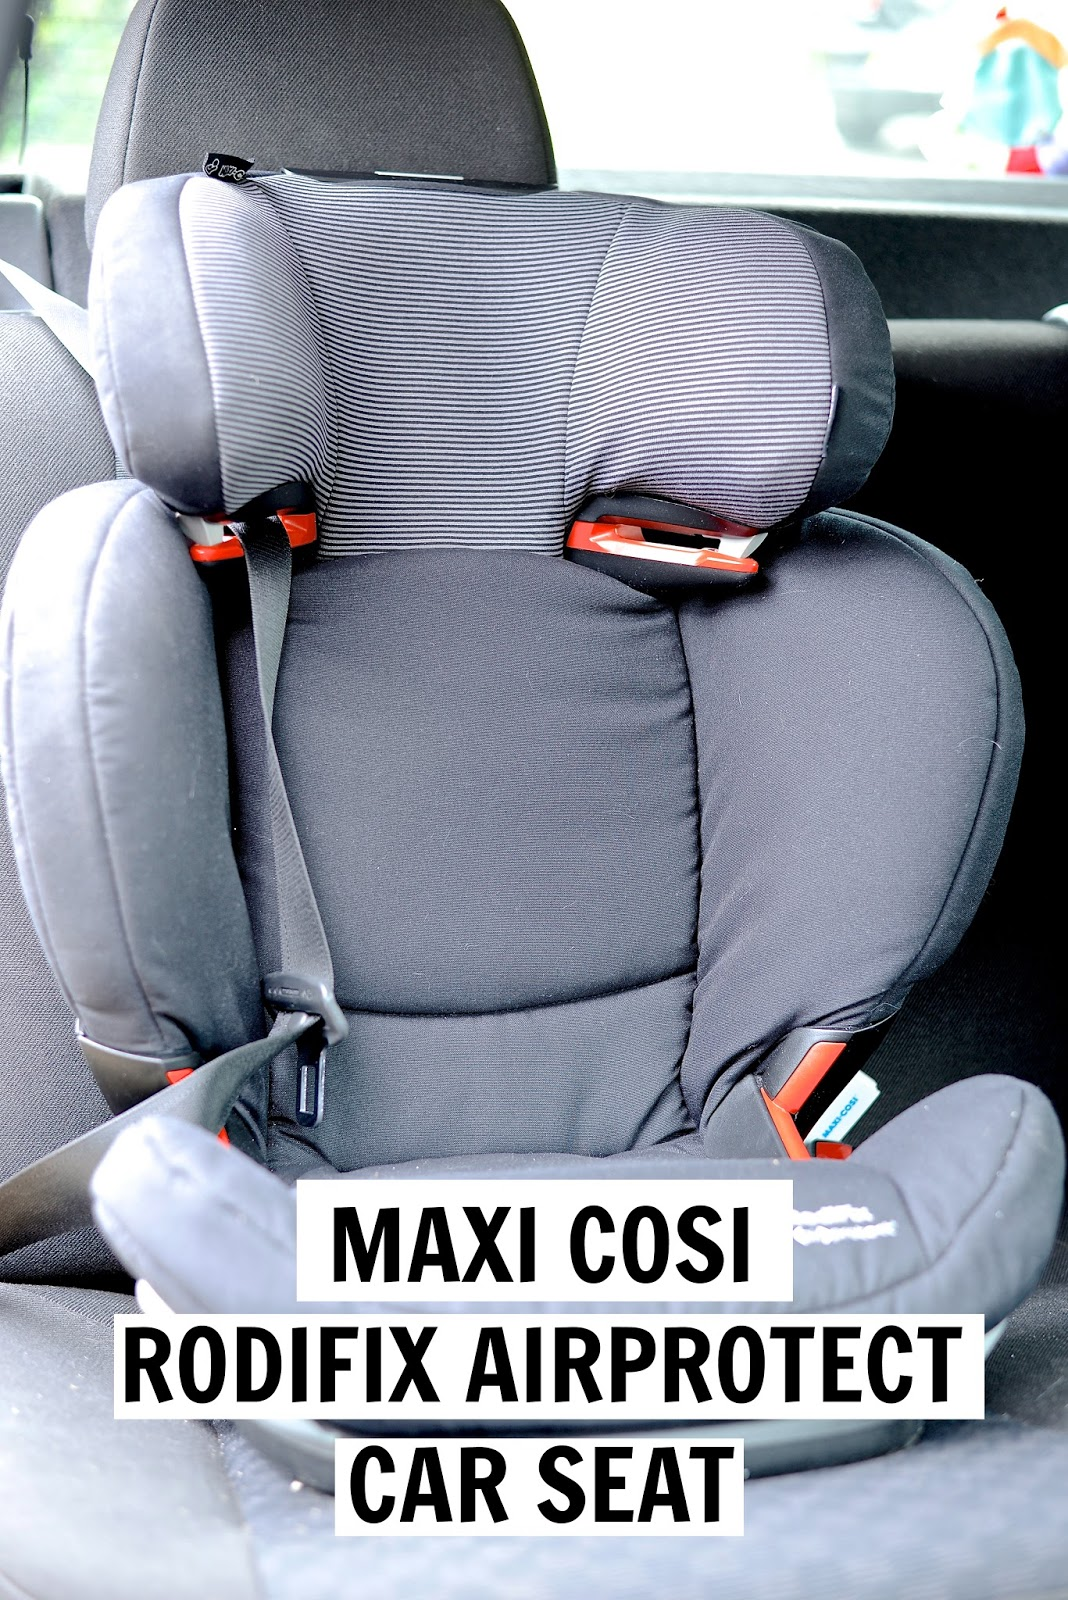 maxi cosi rodifix airprotect car seat review bump to baby beyond blog uk based family. Black Bedroom Furniture Sets. Home Design Ideas